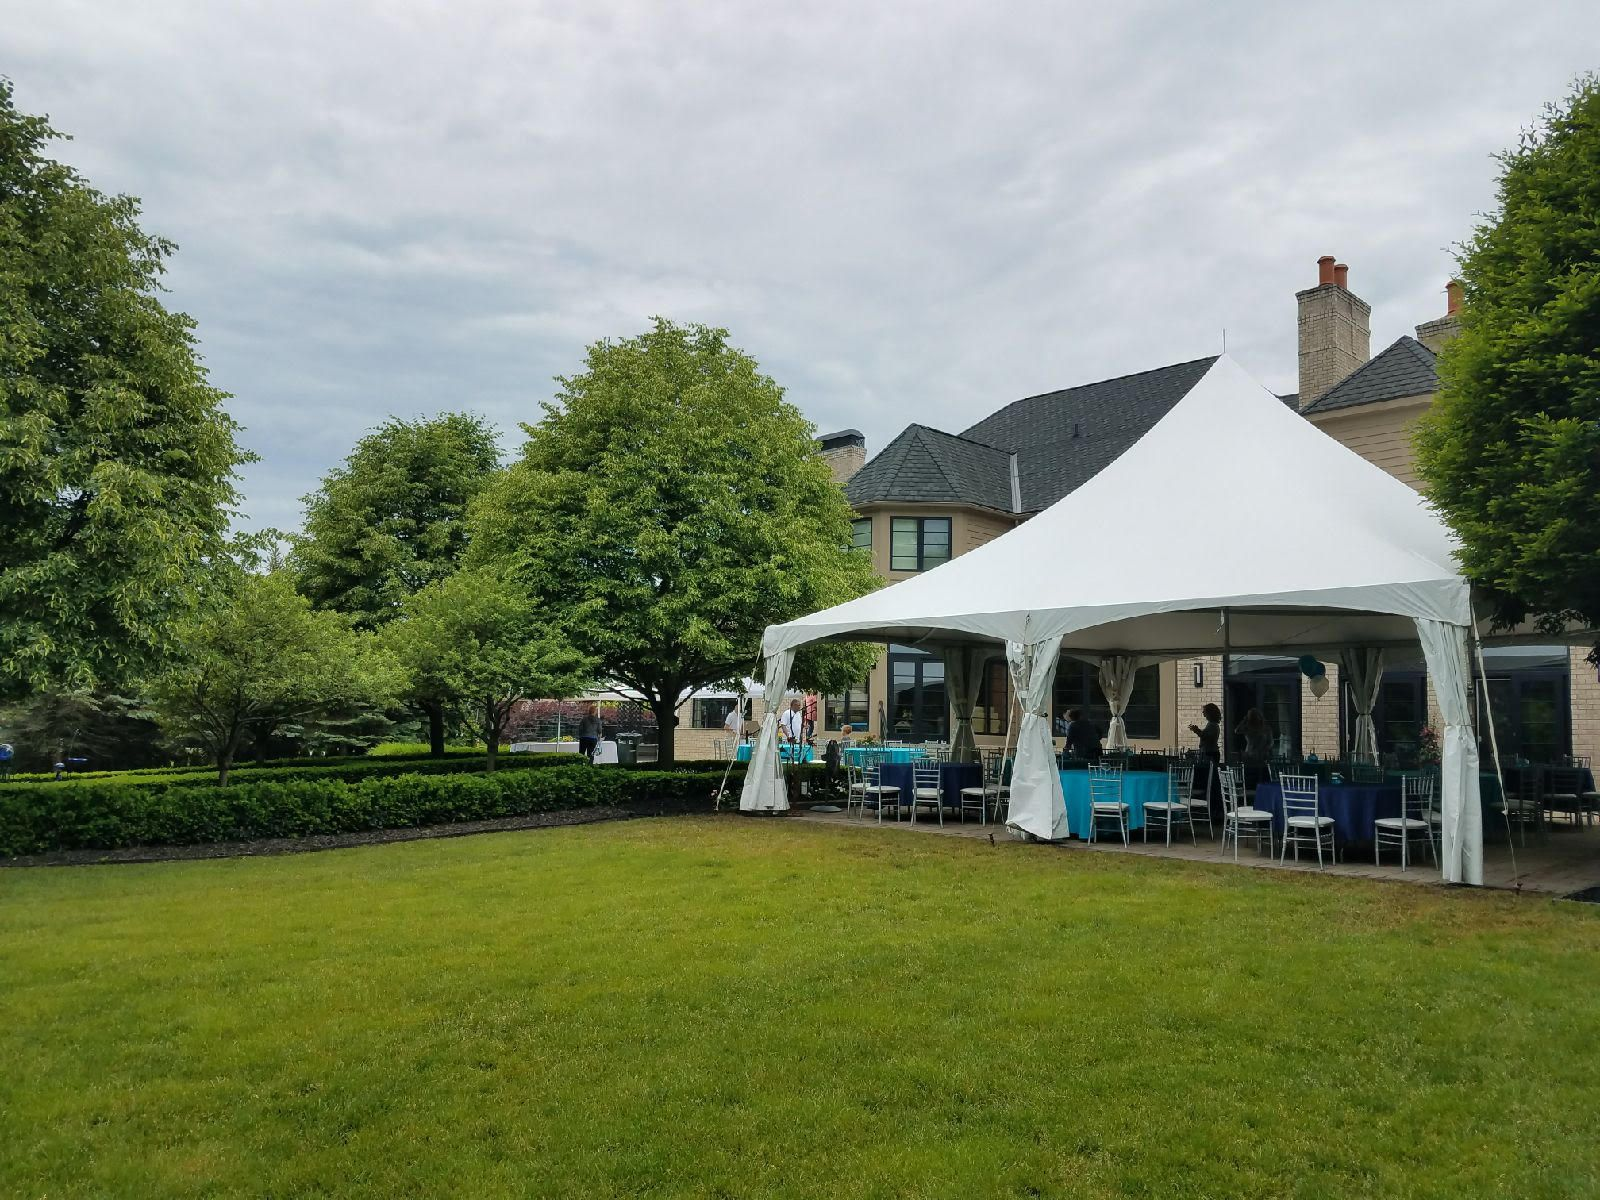 A 30x30 Century tent setup for a 90th birthday party. & A 30x30 Century tent setup for a 90th birthday party. | Our Tents ...